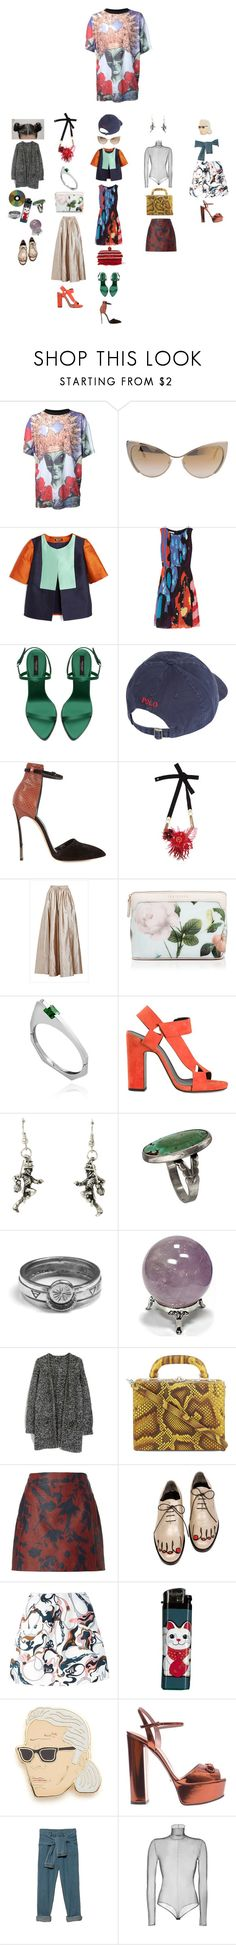 """Untitled #2755"" by duumbblond ❤ liked on Polyvore featuring Roberto Piqueras, Tom Ford, Oscar de la Renta, Zara, Polo Ralph Lauren, Casadei, Matthew Williamson, Ted Baker, Delfina Delettrez and Pierre Hardy"